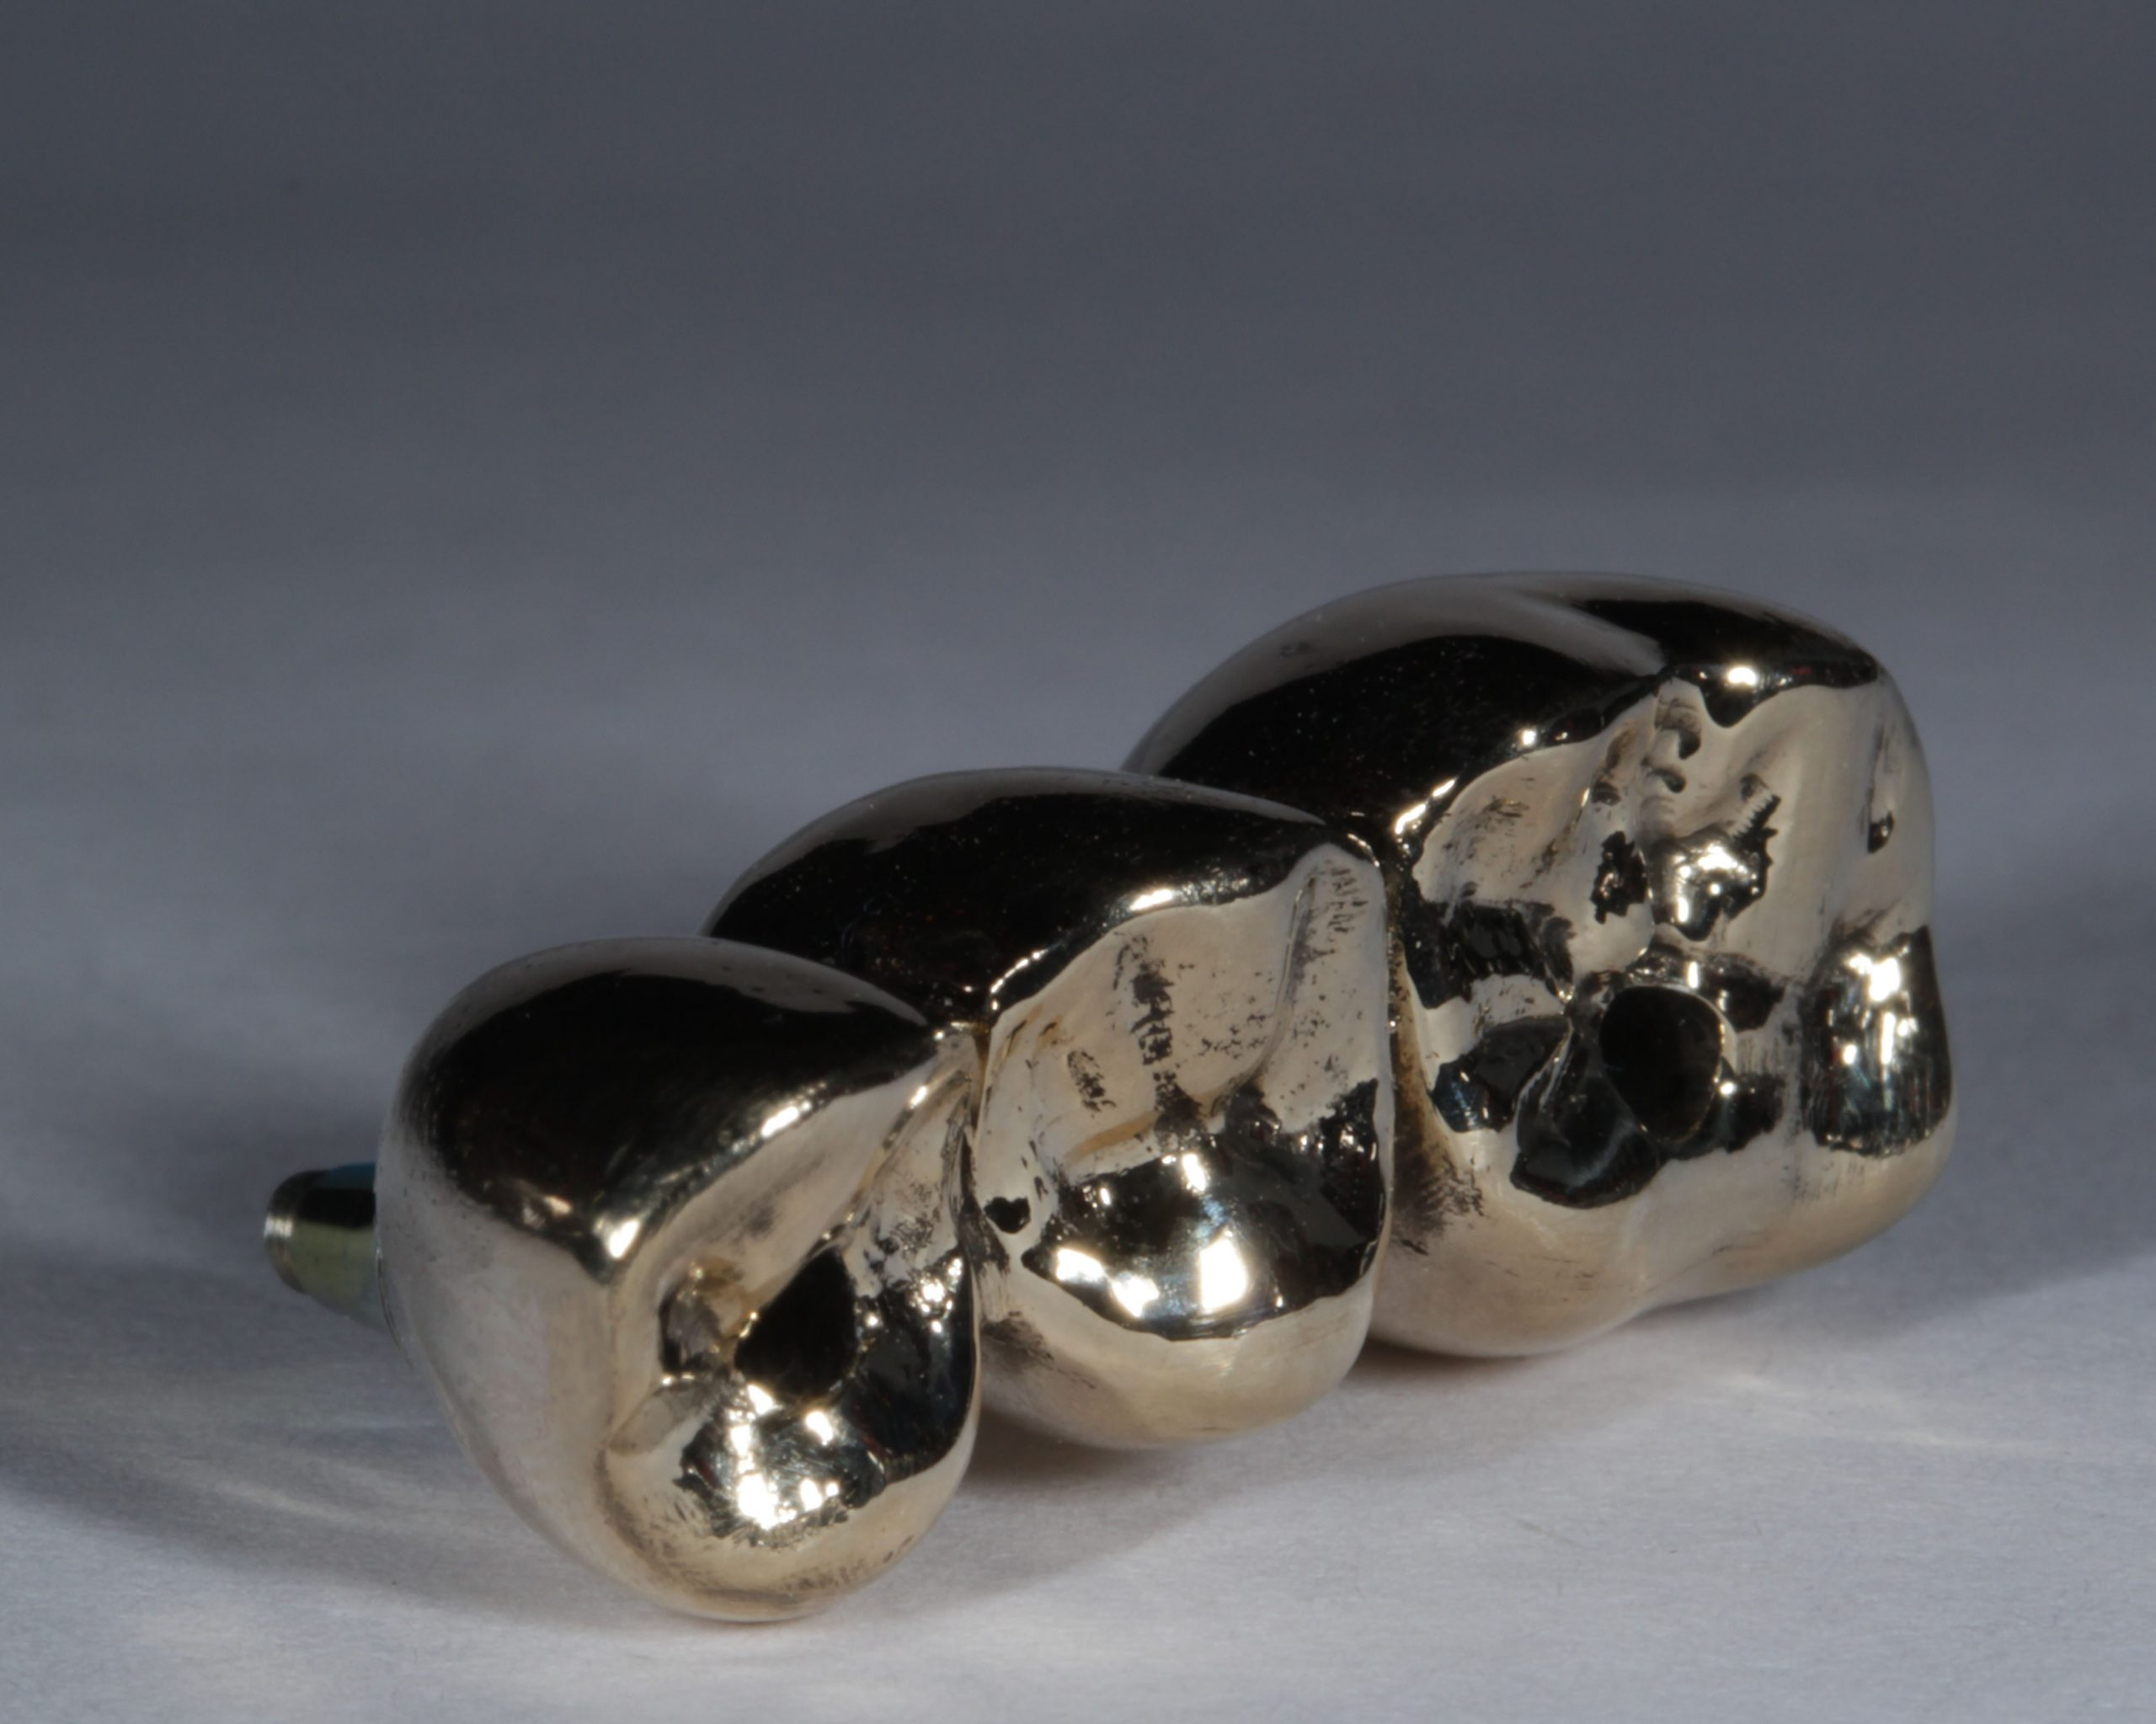 21g gold made laser sintered by Skillbond on Ankylos screw retained Ti-bases_0017_Background_0012_Layer 3